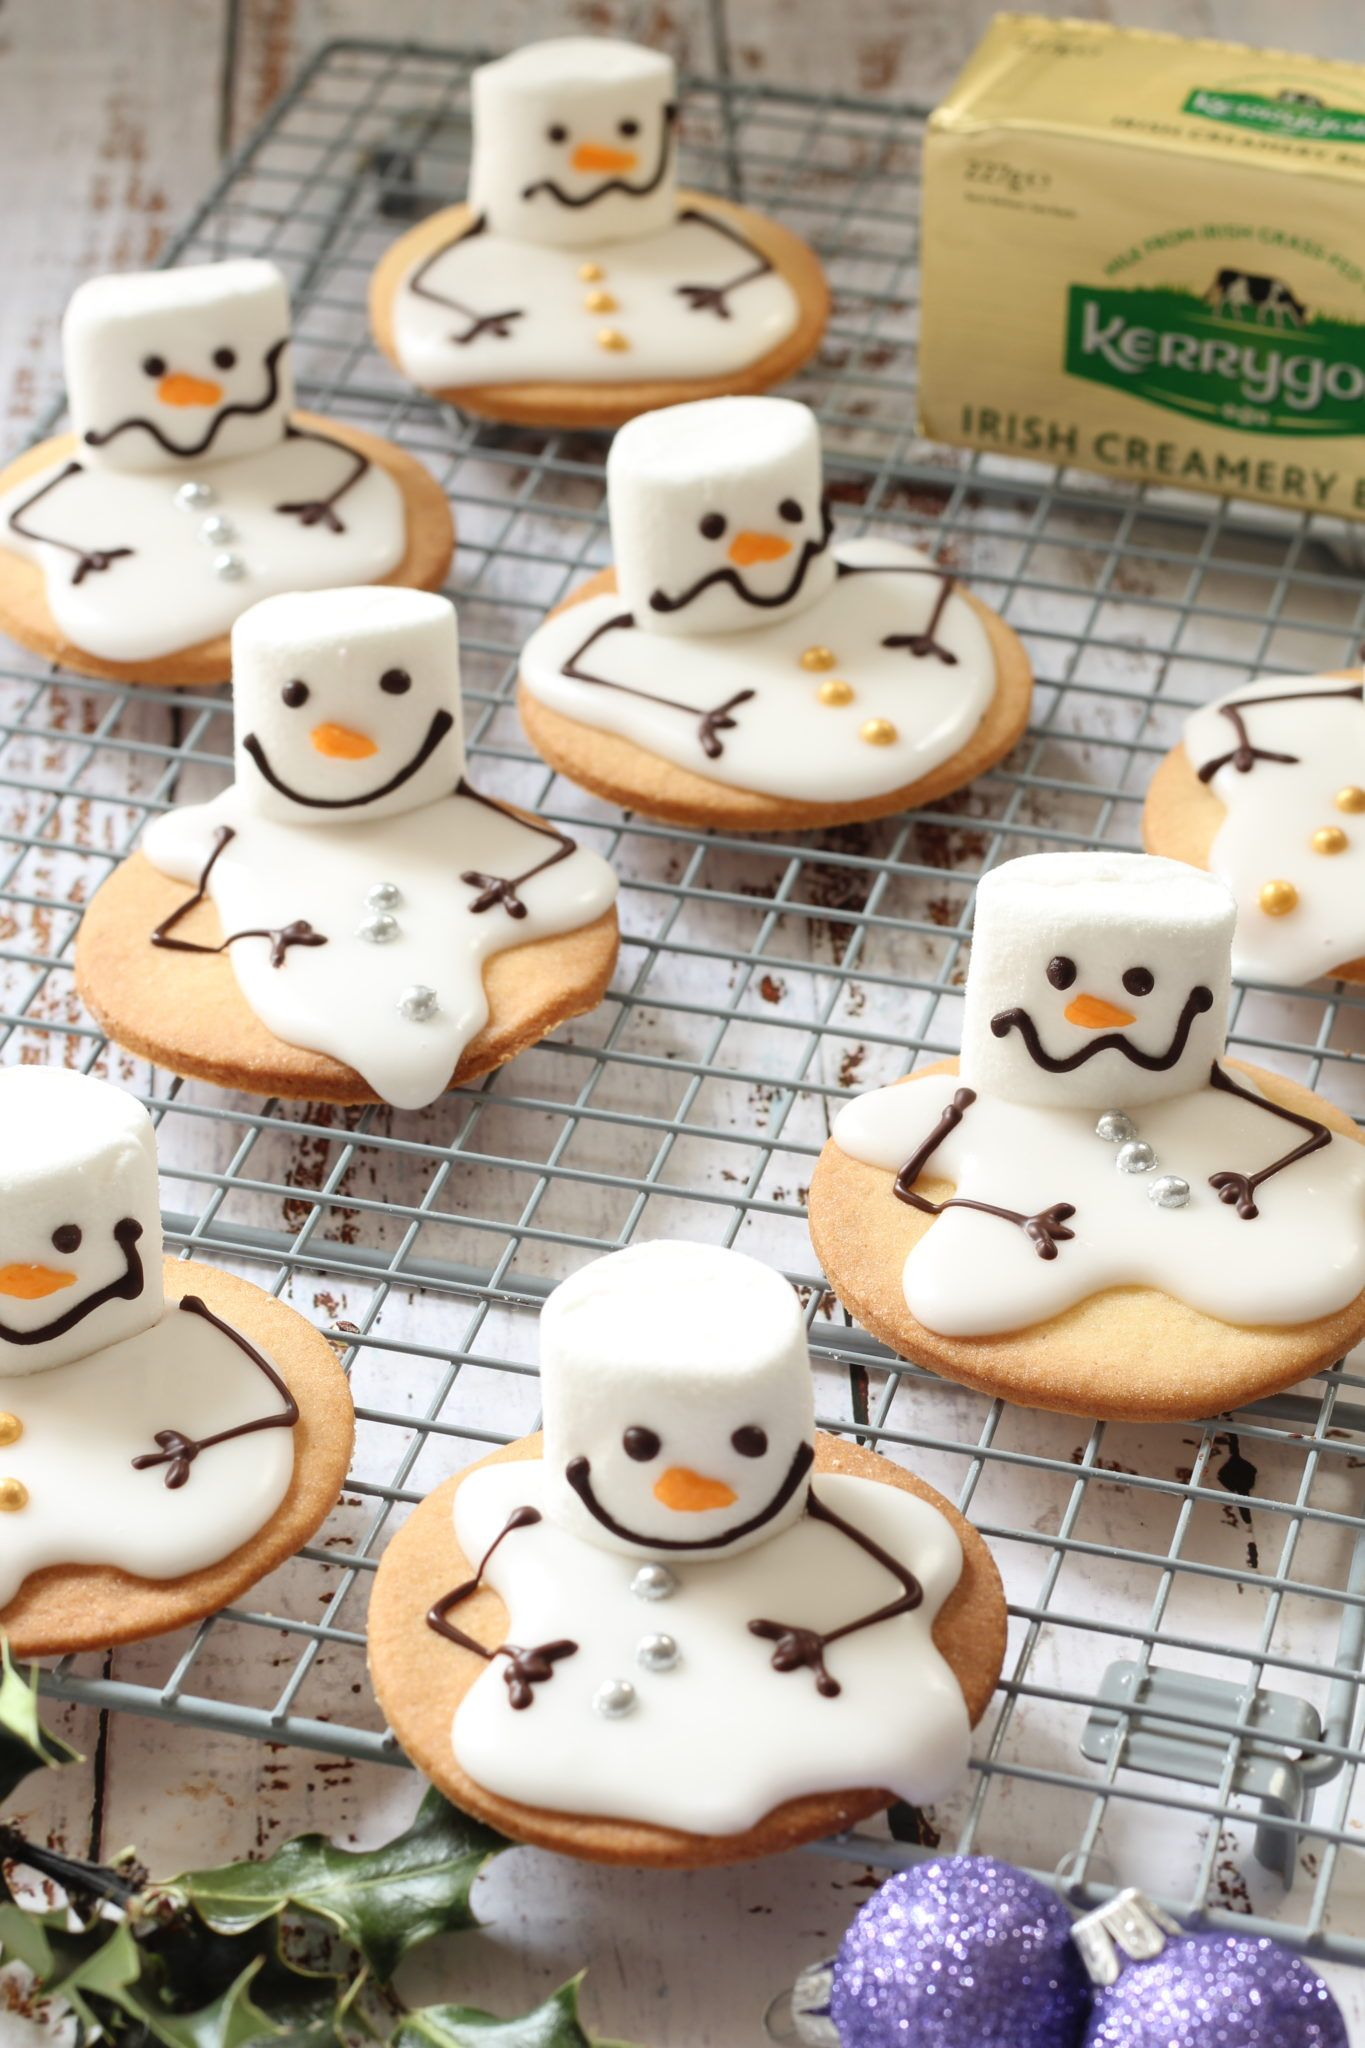 These melted snowmen biscuits are seriously cute: Here's how to make them